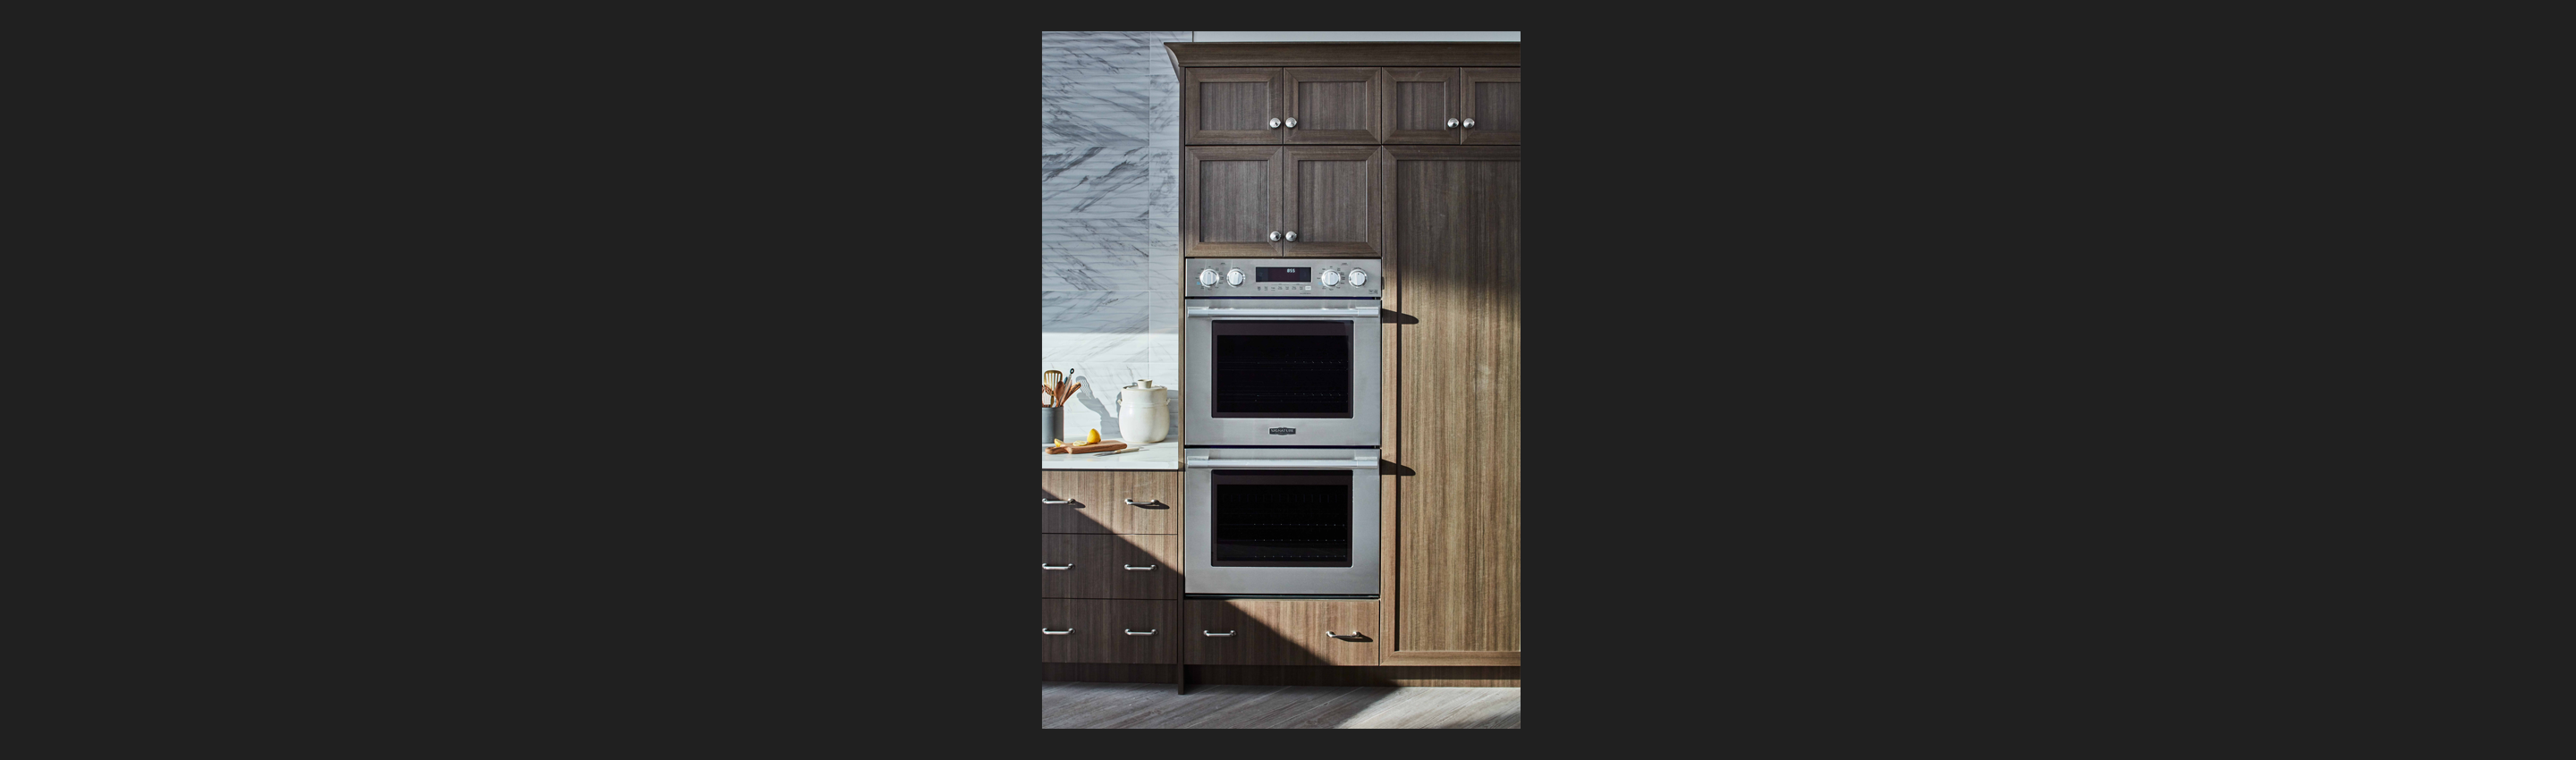 Double Wall Oven from Signature Kitchen Suite